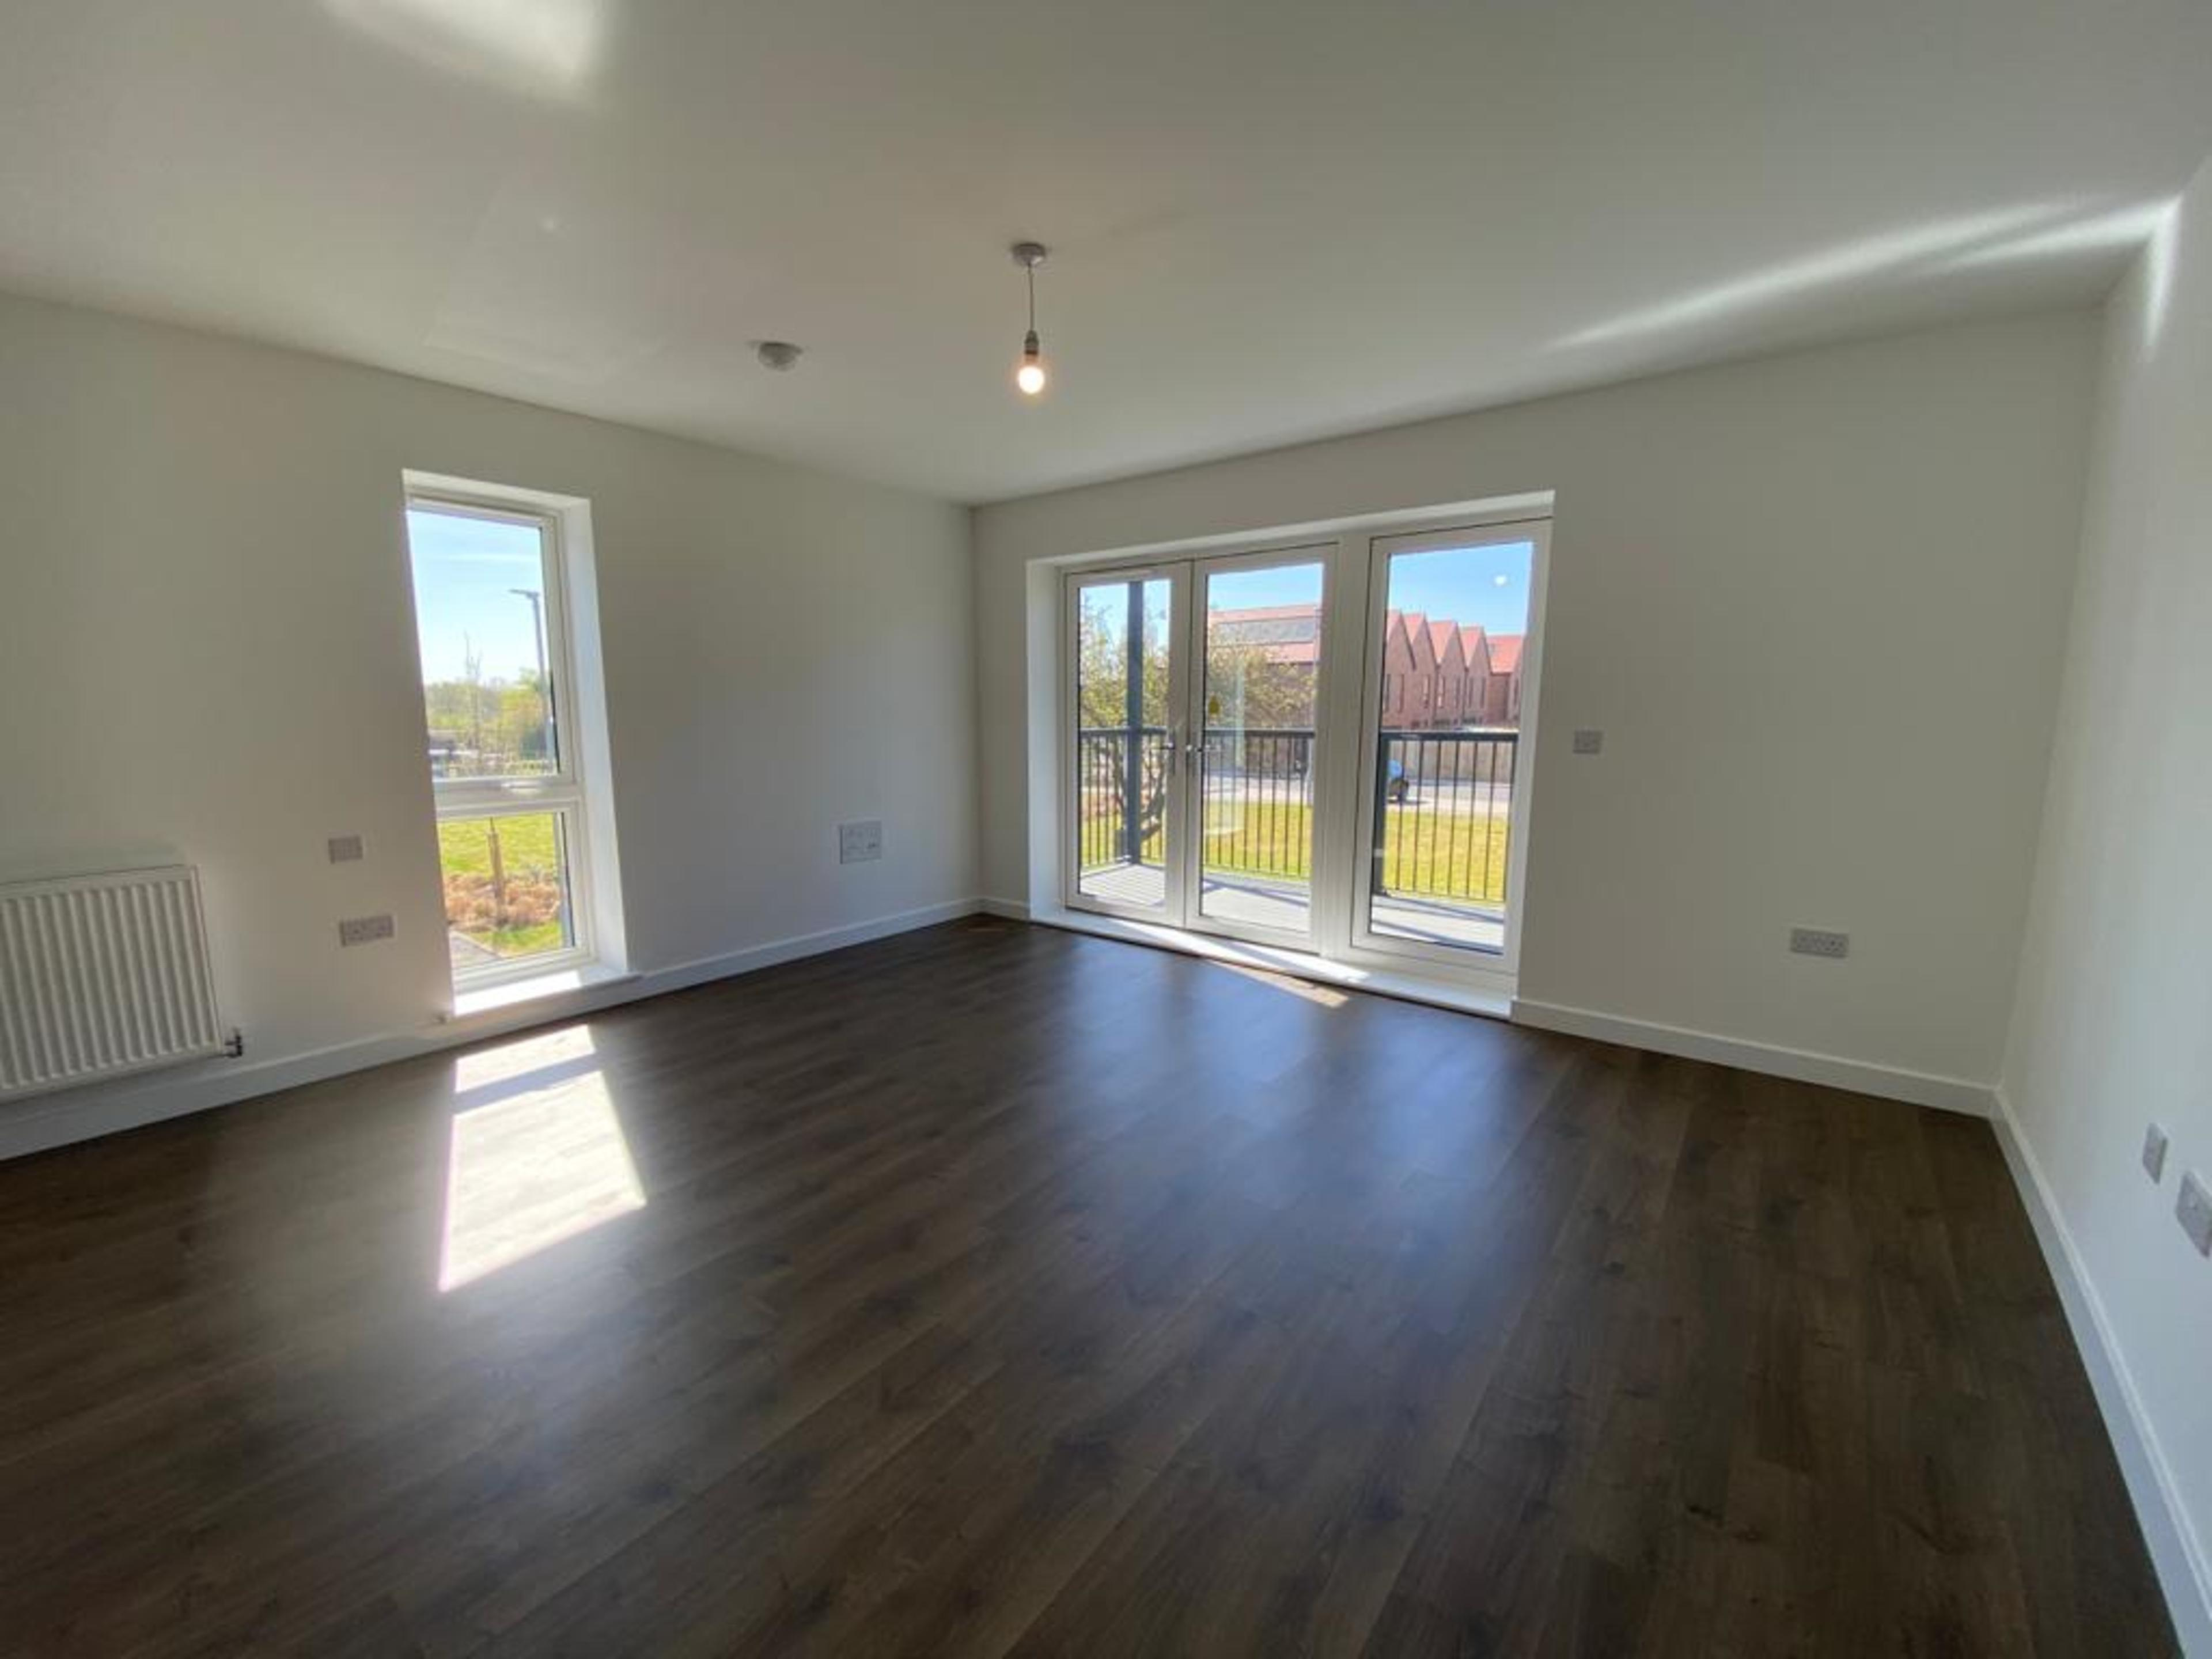 st-georges-park-new-build-2-bed-living-area